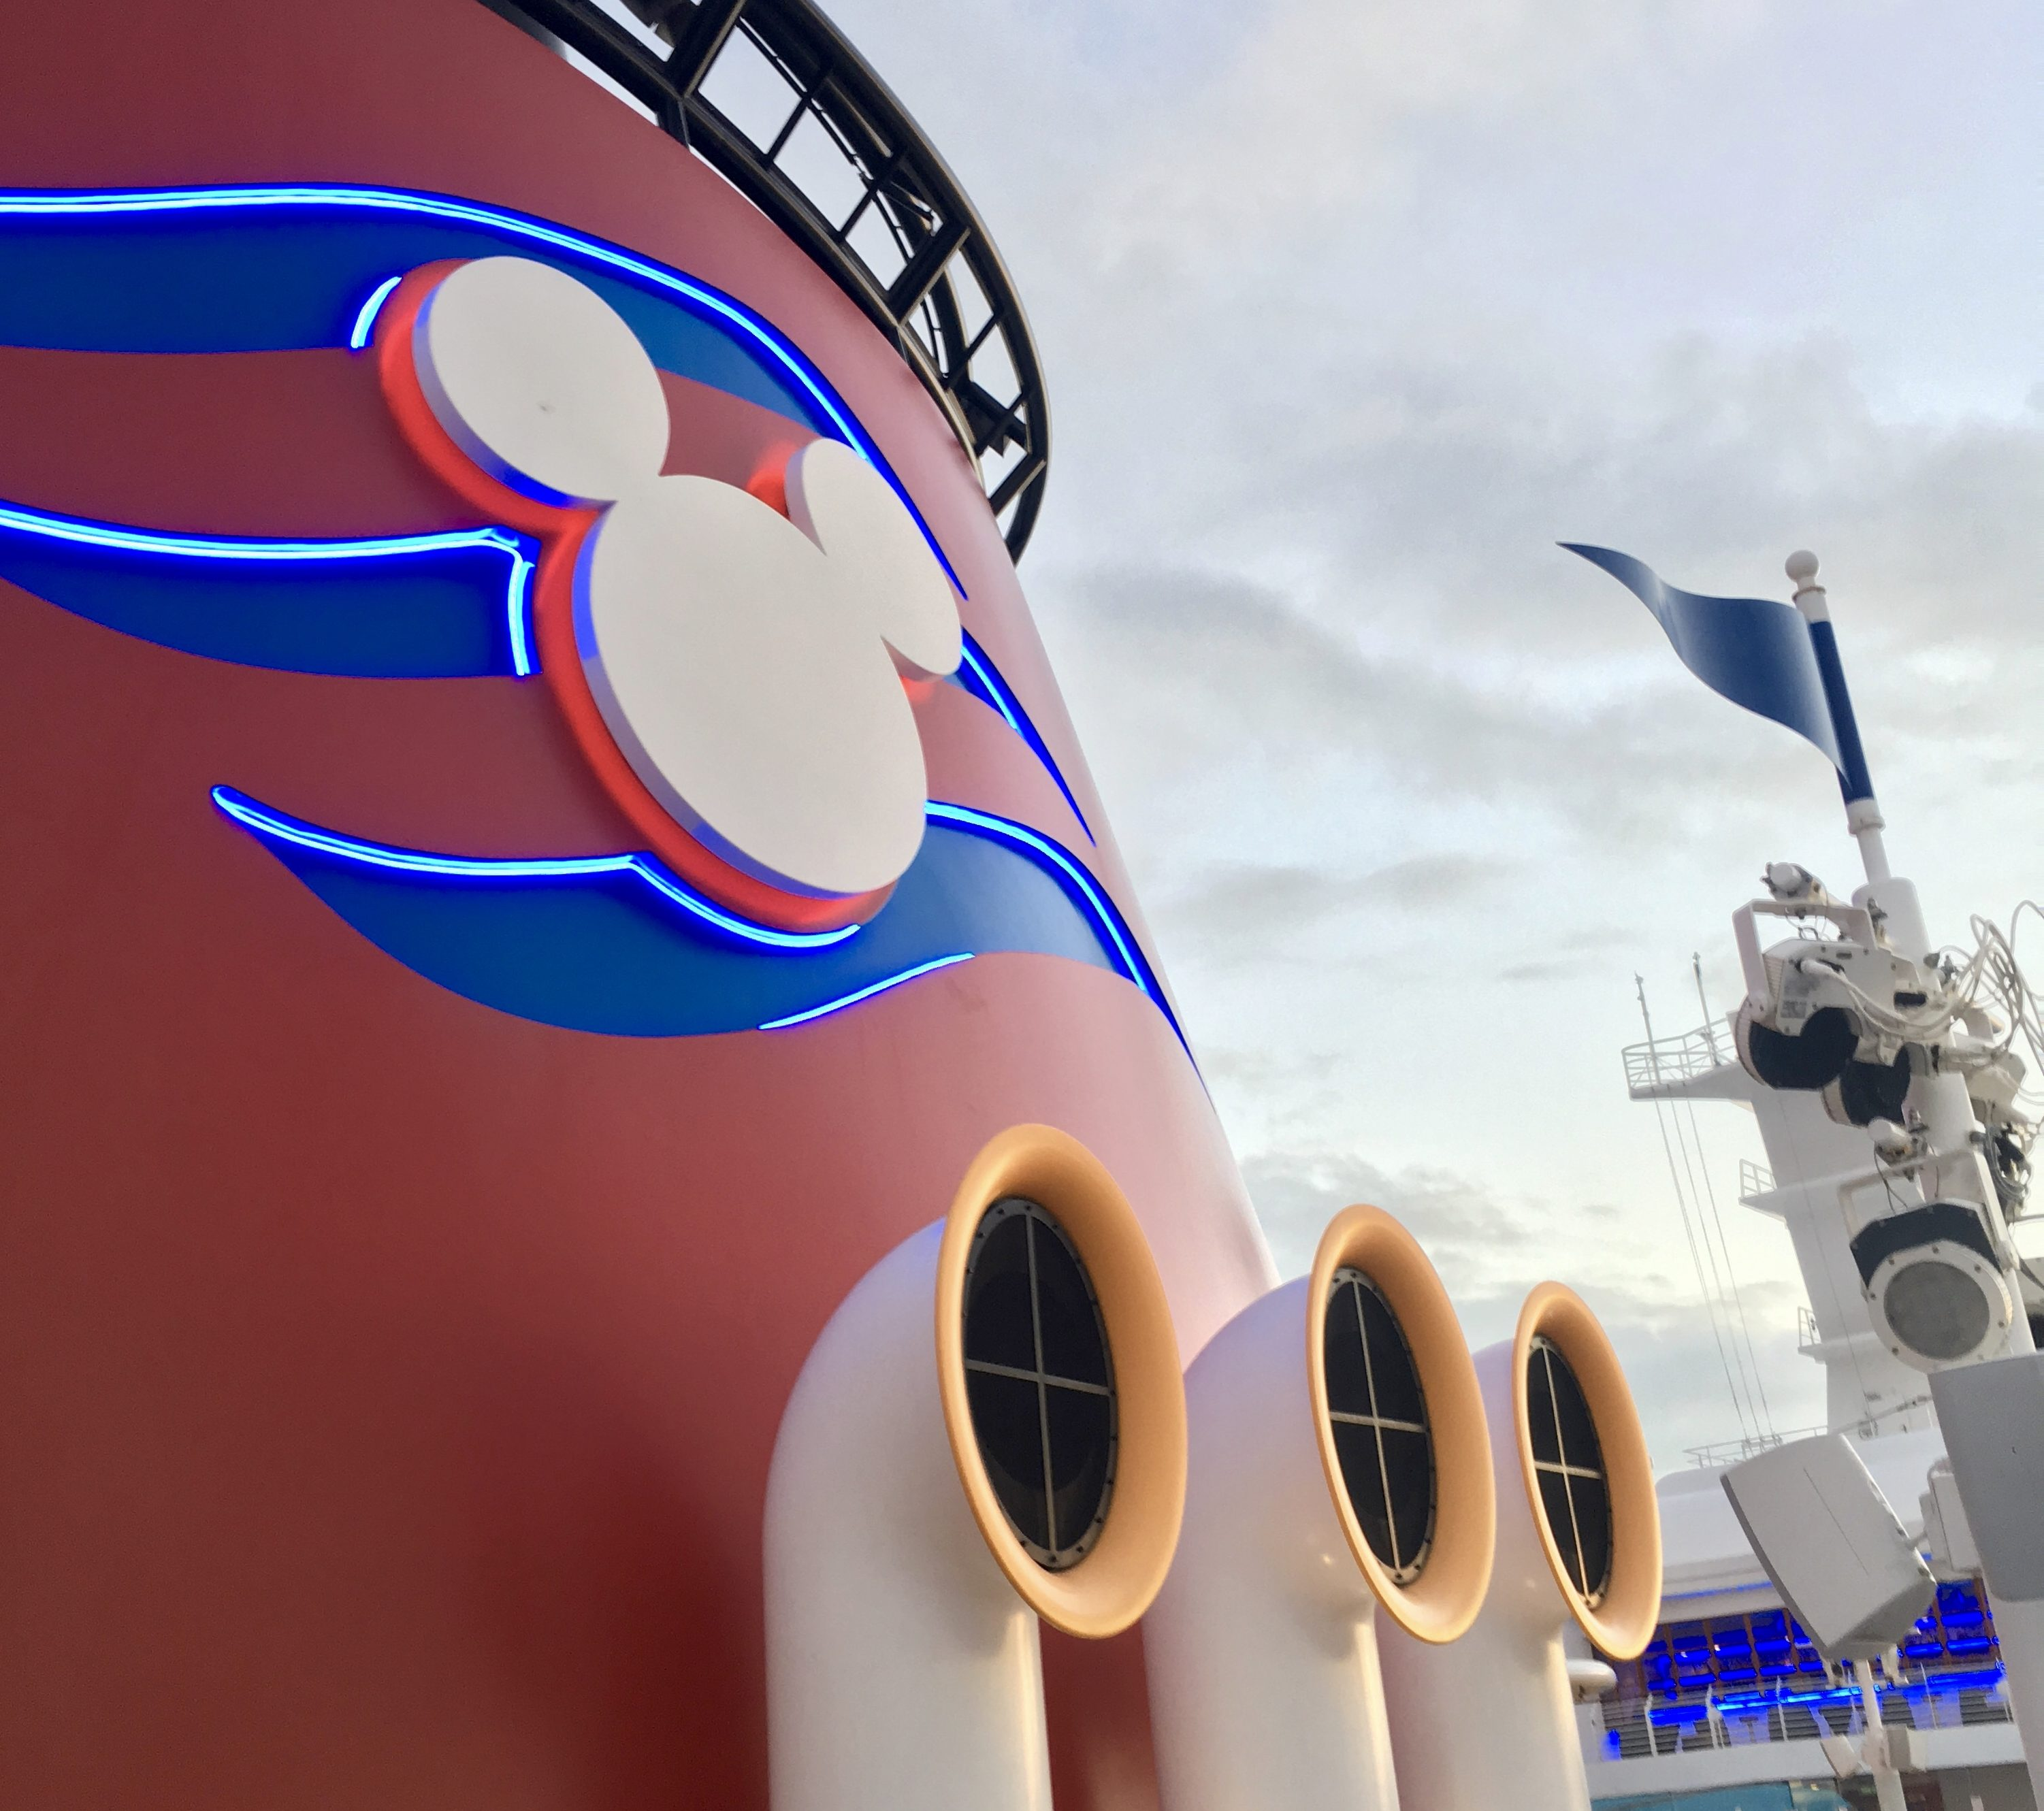 Disney cruising without the kids!